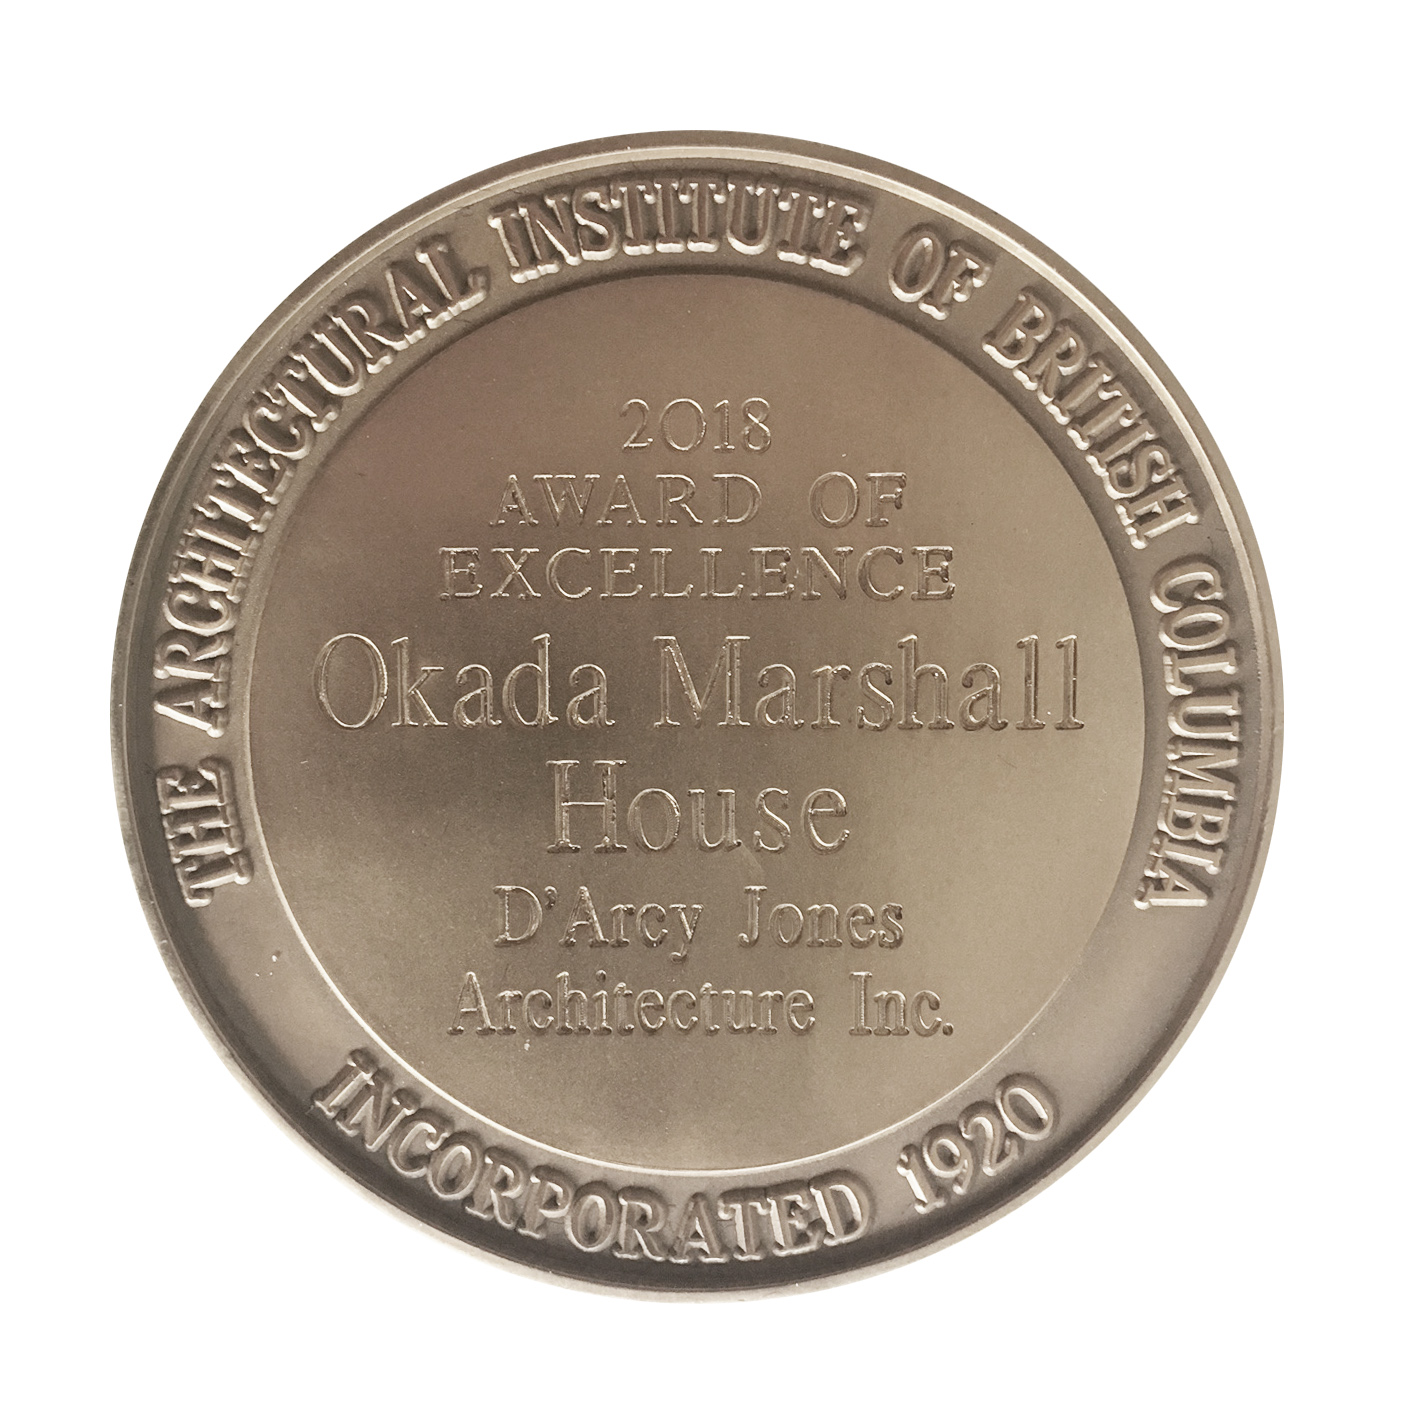 LIEUTENANT GOVERNOR OF BRITISH COLUMBIA 2018 AWARD OF EXCELLENCE - The Okada Marshall House was awarded a Lieutenant Governor of British Columbia 2018 Award of Excellence Medal.